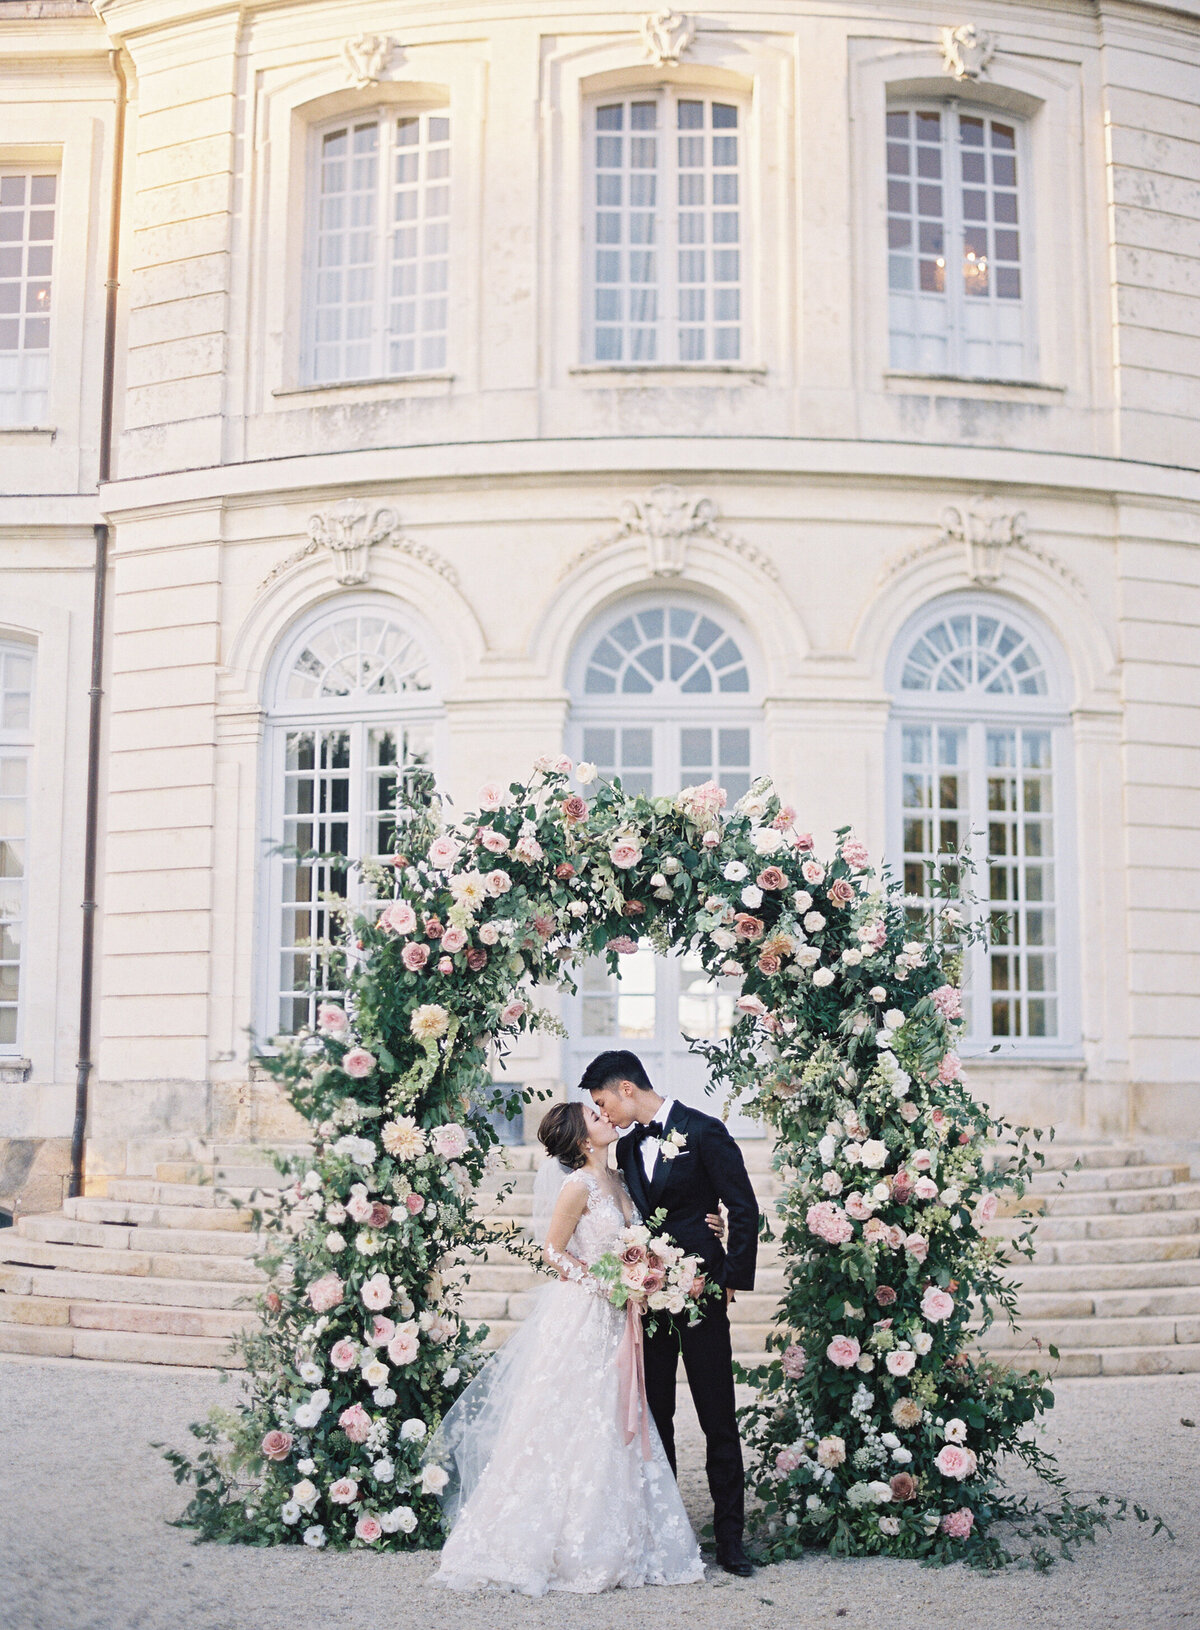 Chateau_de_grand_luce_wedding17